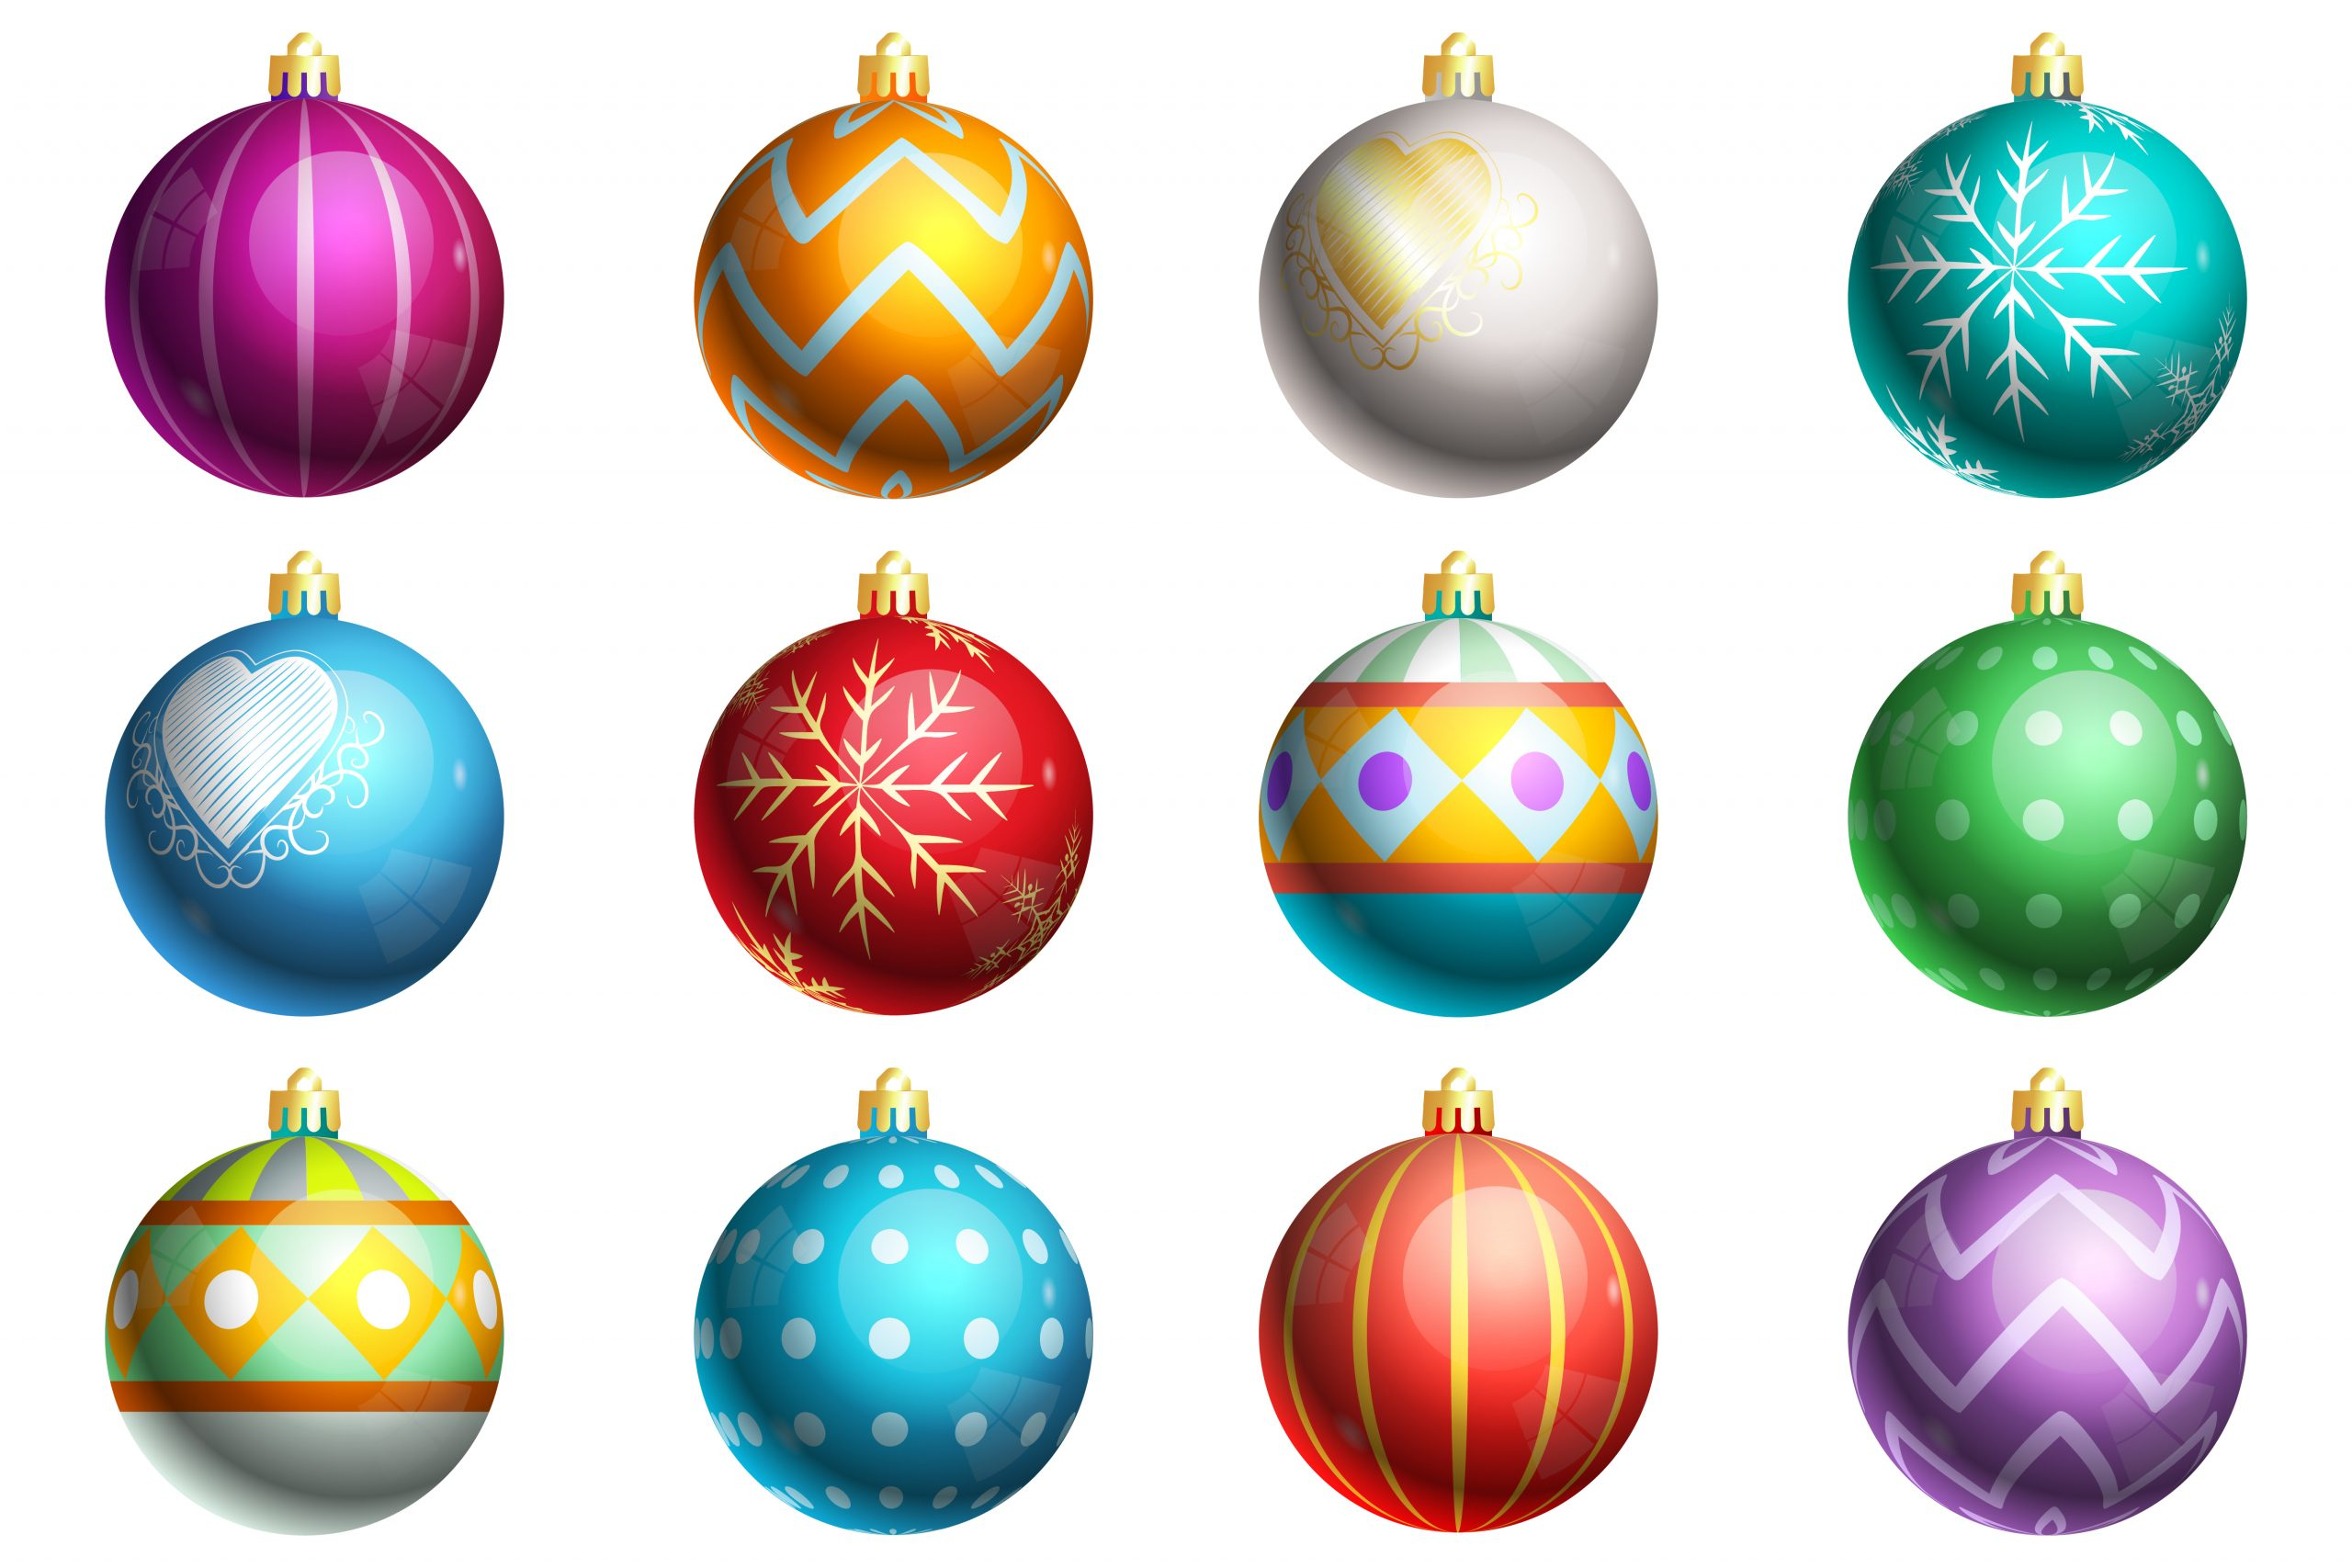 How to paint a Christmas glass ornament